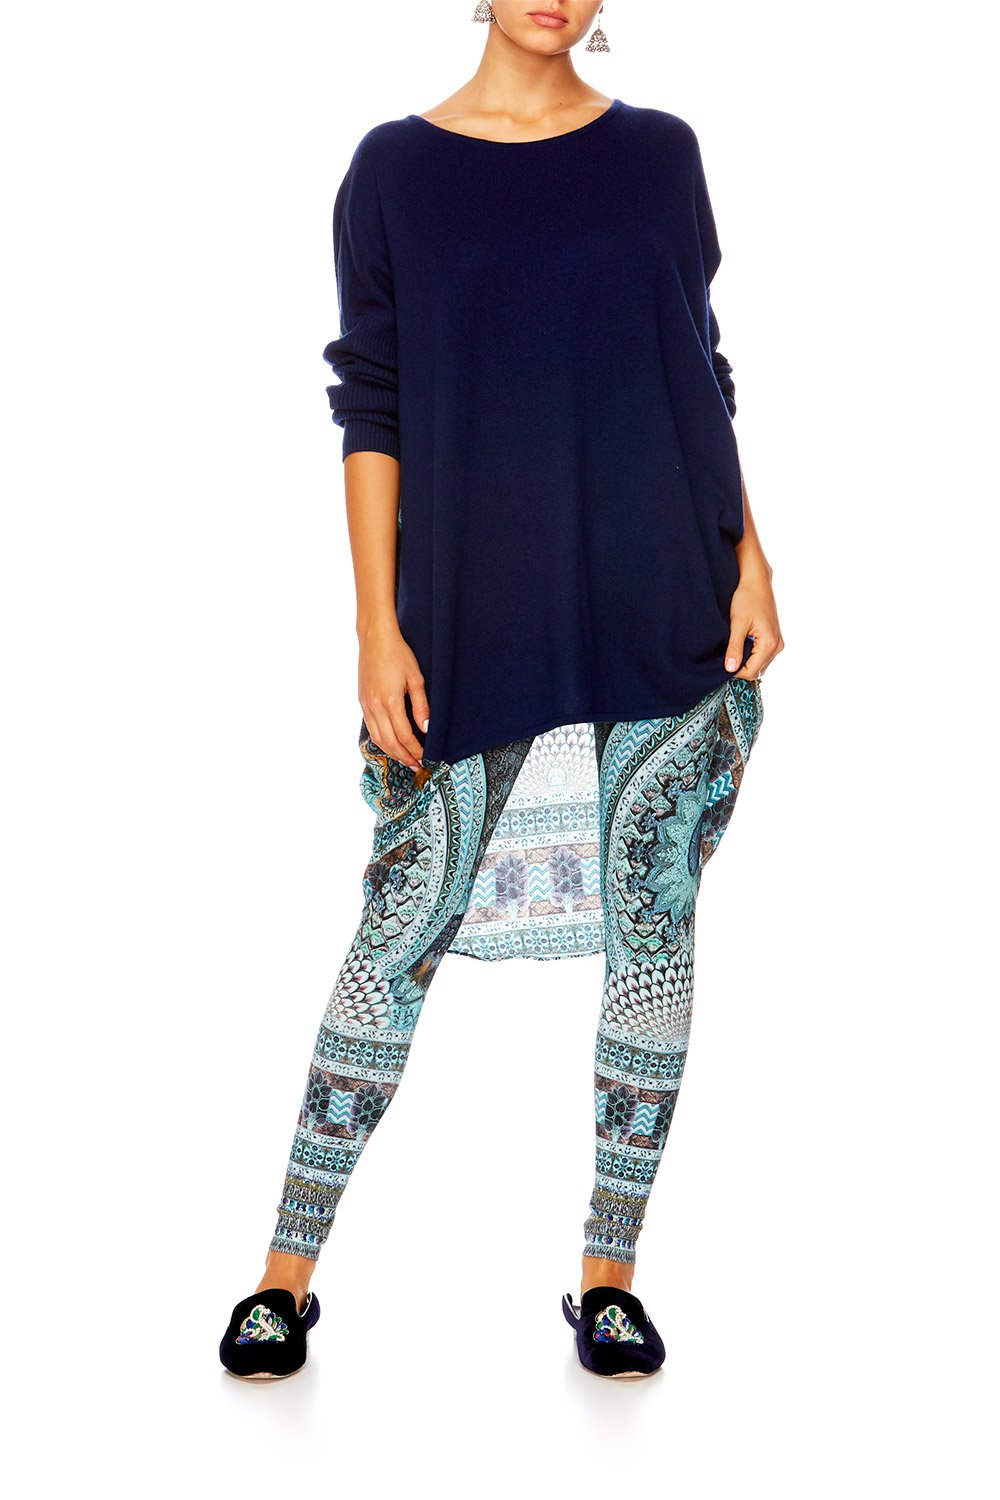 TURN ON THE CHARM LEGGINGS